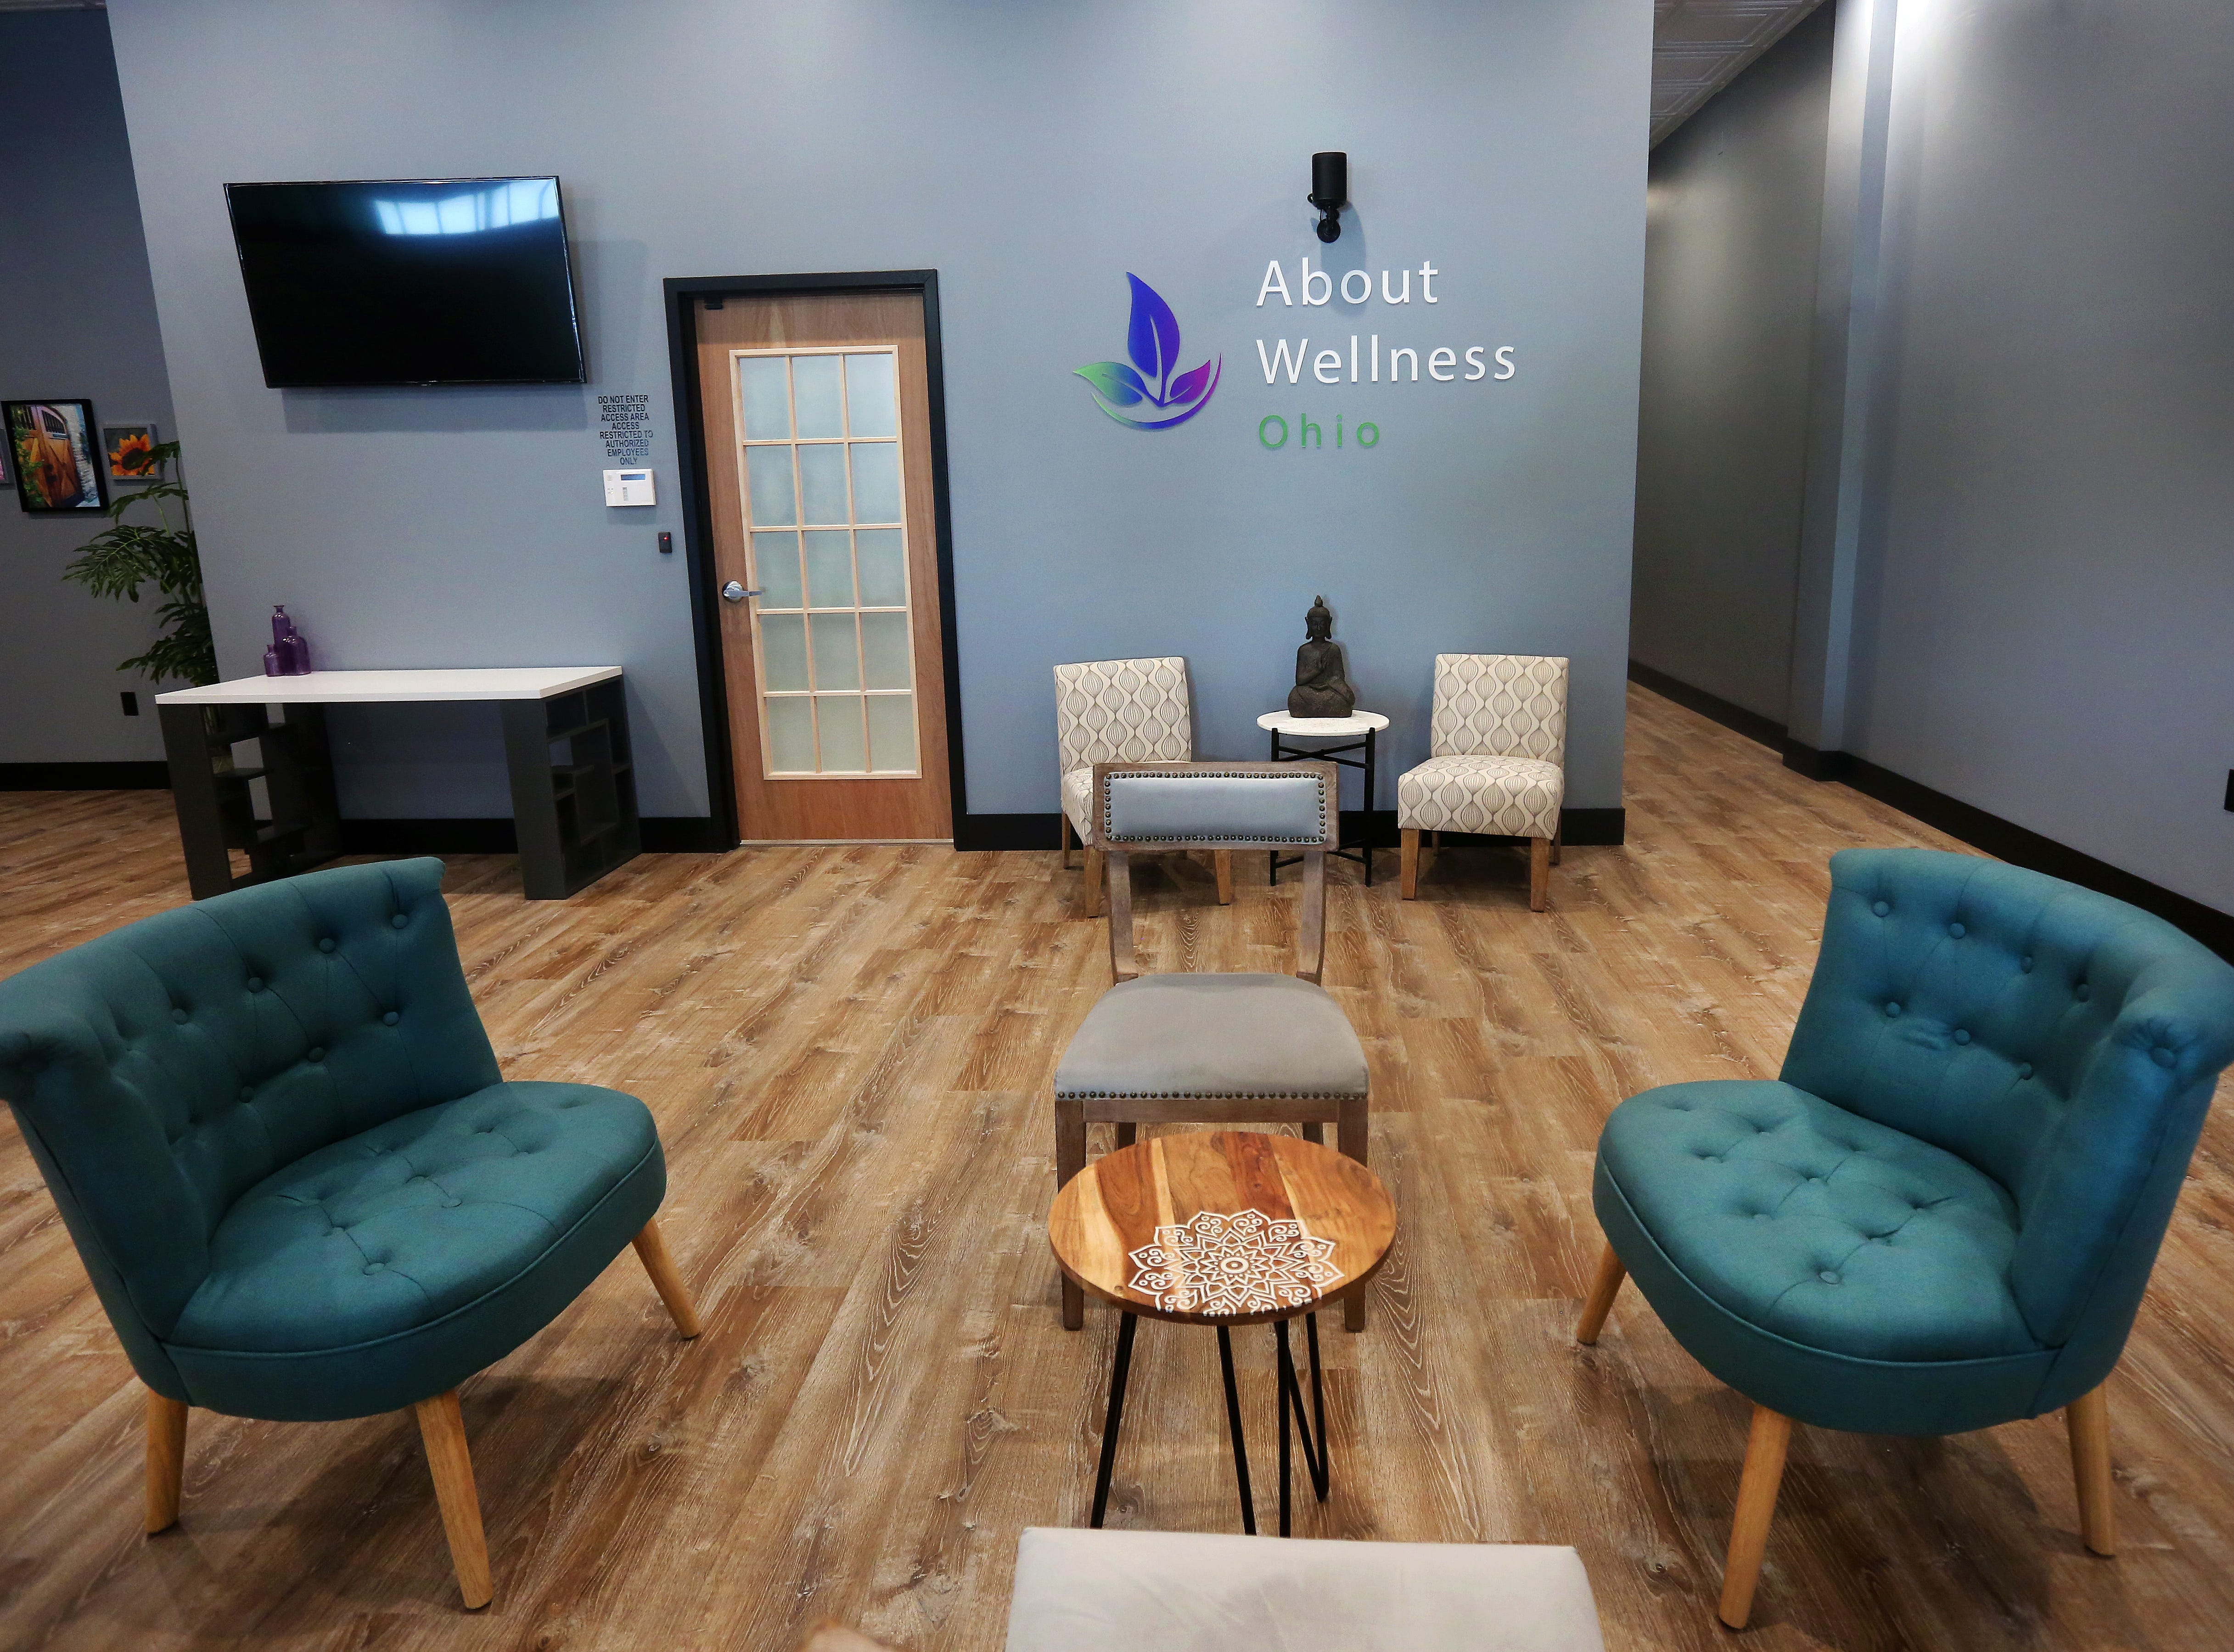 Pictured is the main waiting area inside of the About Wellness Ohio medical marijuana dispensary.